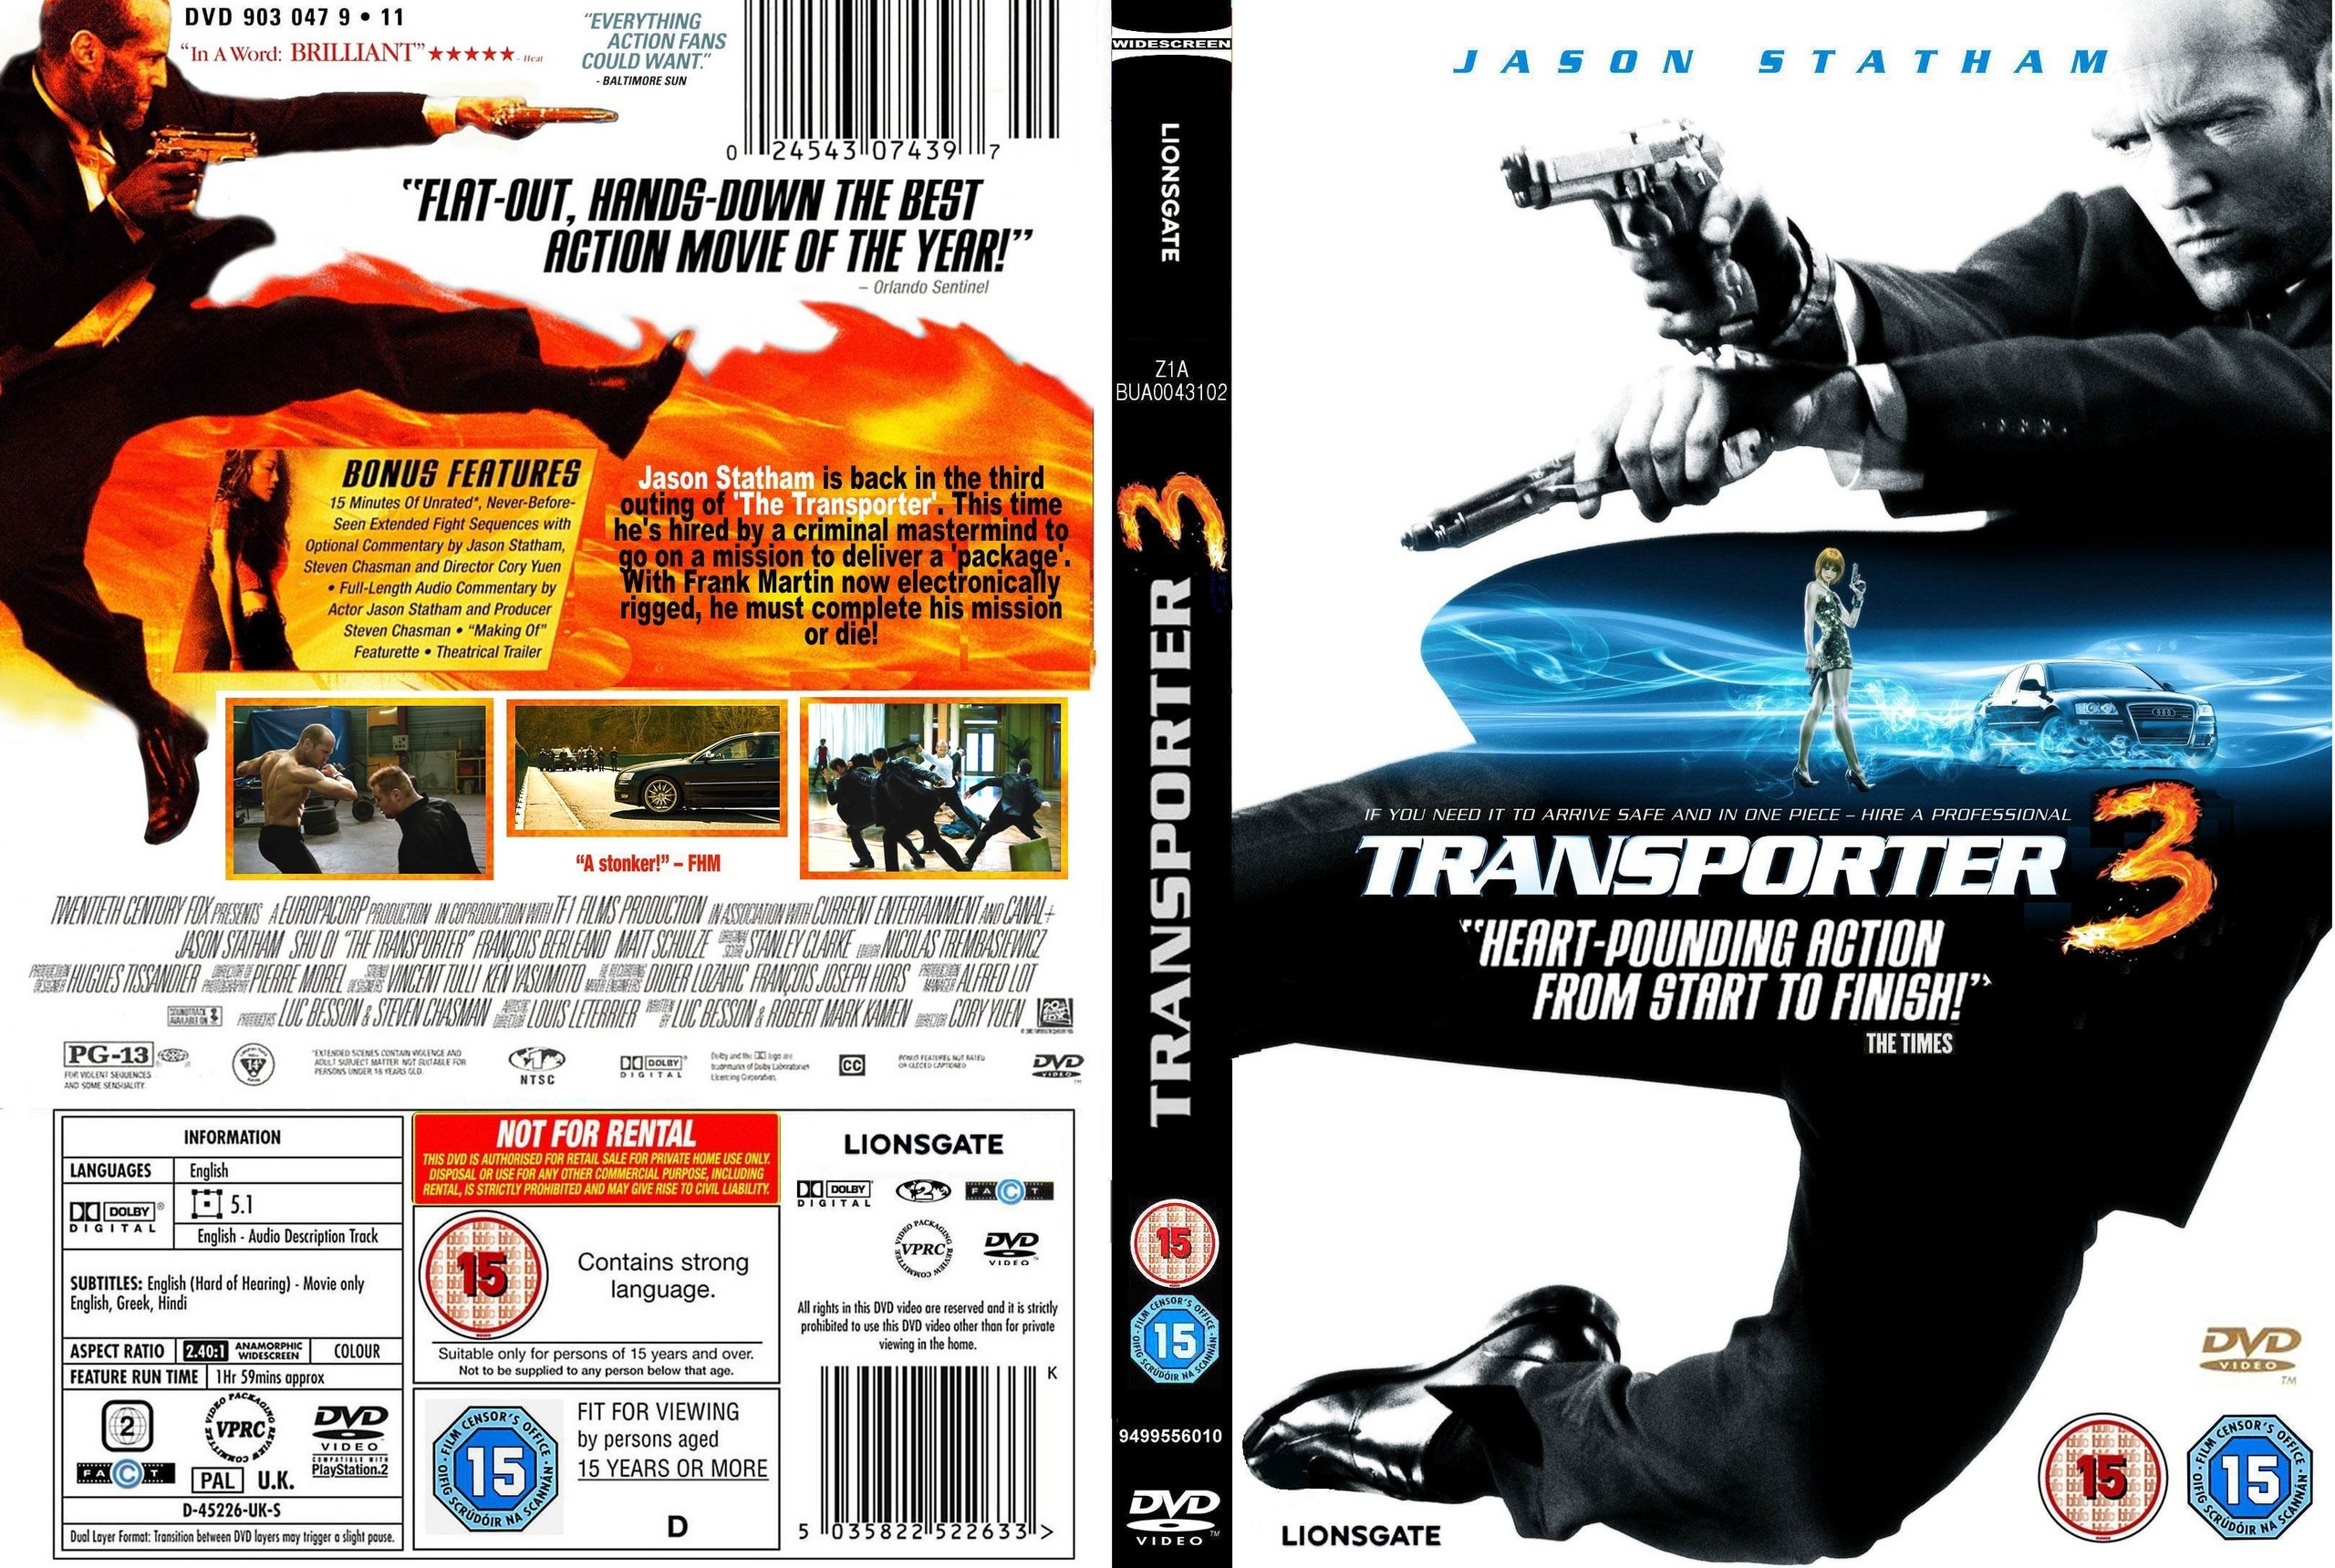 Jack Mallon Media Coursework: Analysis of posters and DVD